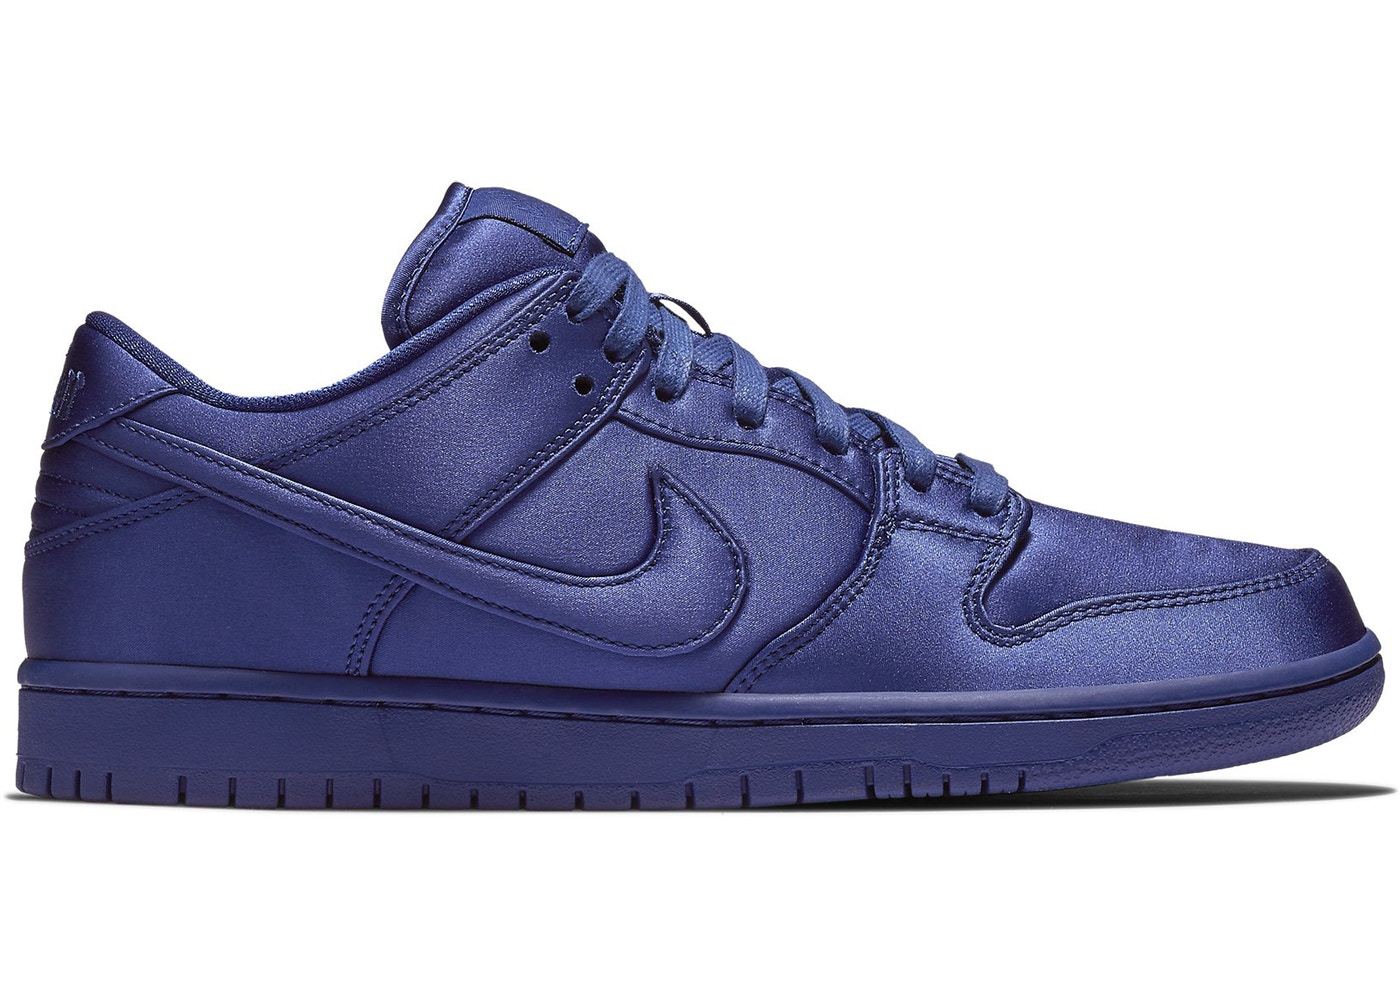 b35957204ae1 Nike SB Dunk Low NBA Deep Royal Blue - AR1577-446